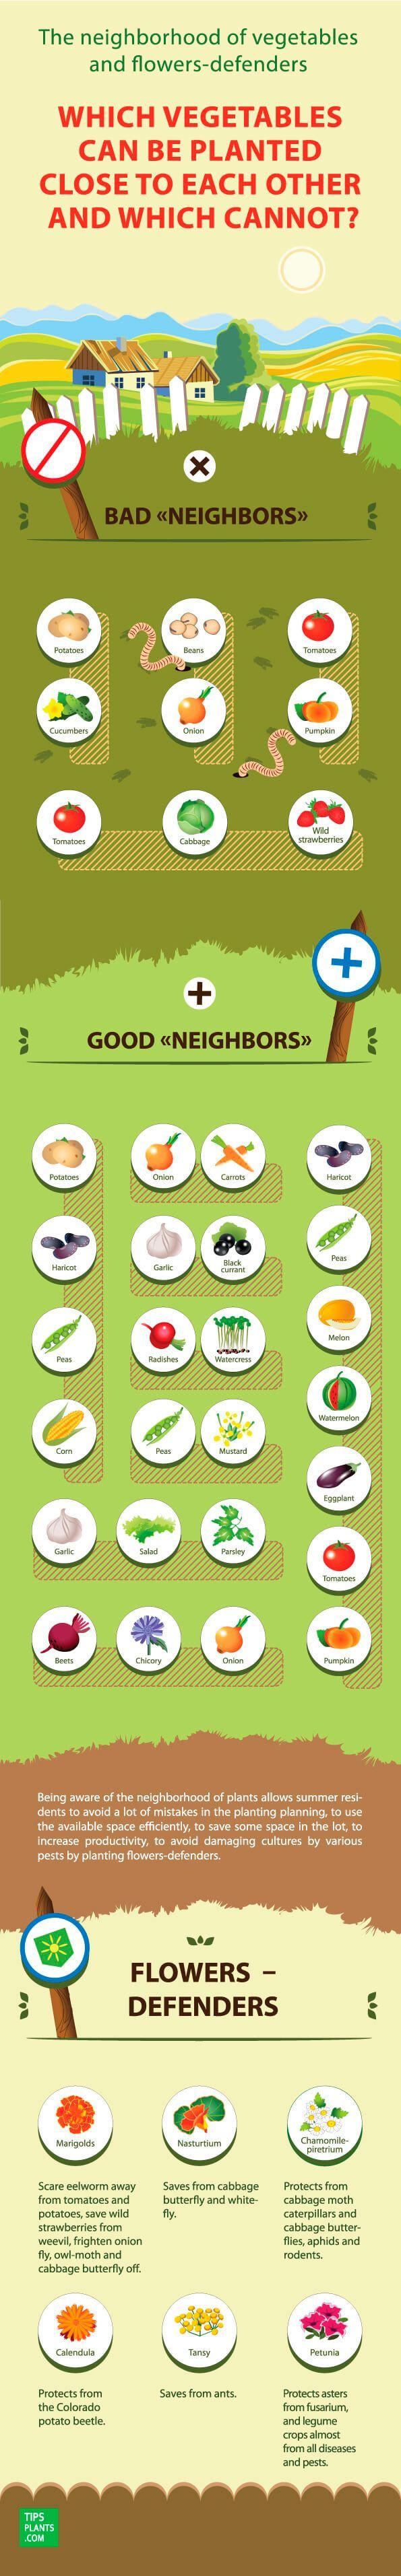 18 Most Important Rules of Companion of Plants and Vegetables in The Garden #infographic